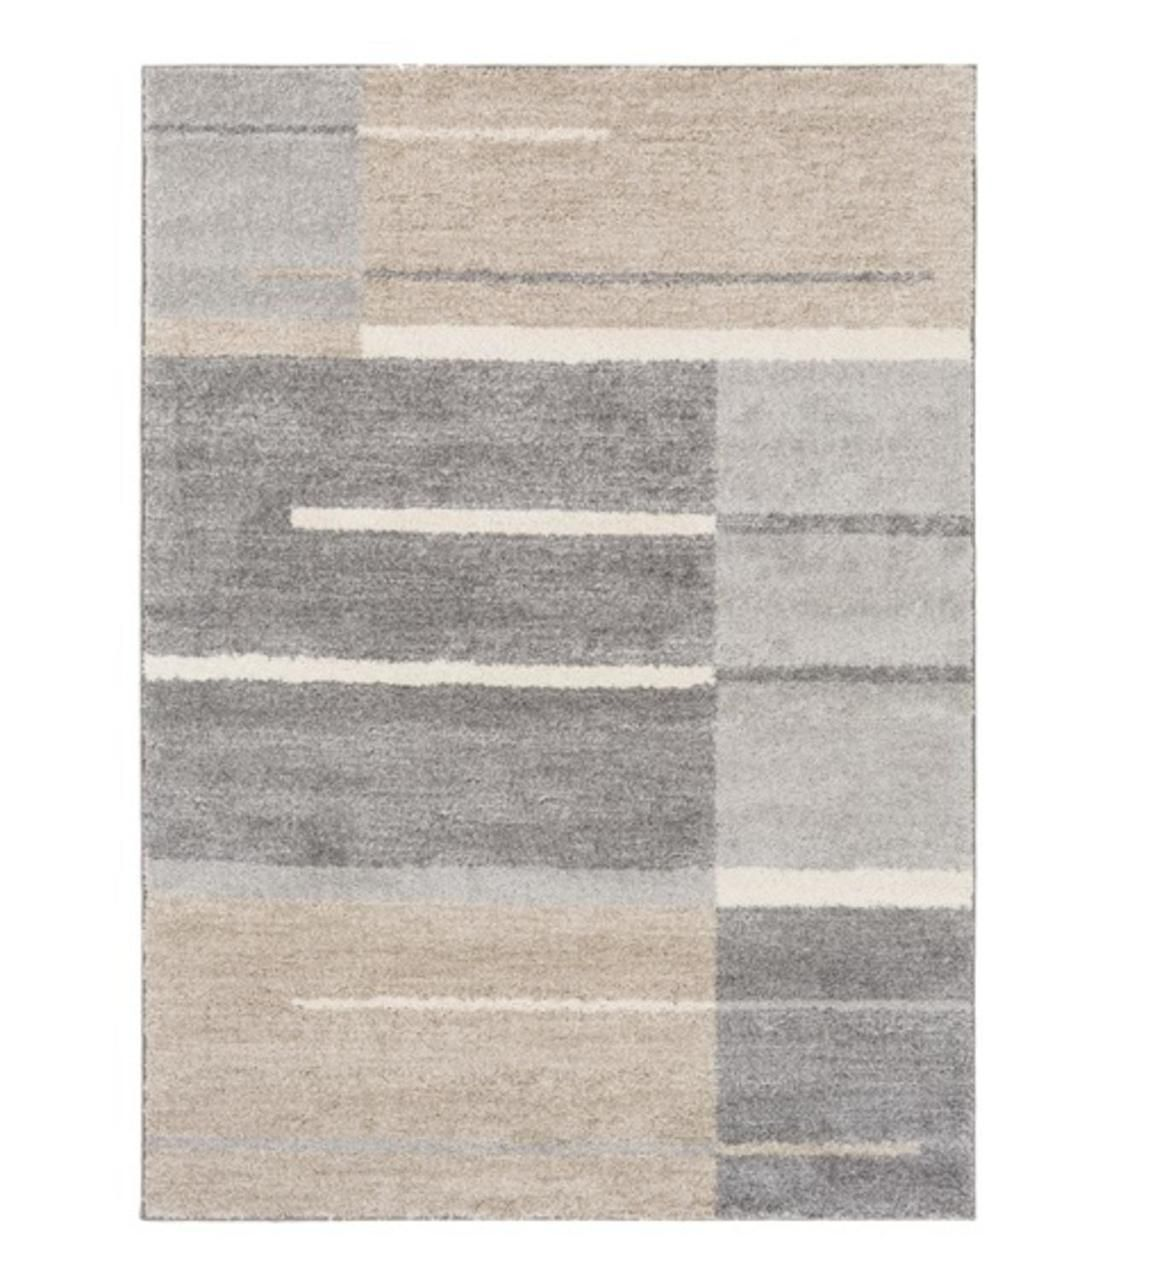 2 5 X 8 Faded Barricade Slate Gray Taupe Brown And Fog White Area Throw Rug Runner In 2020 Area Rugs Contemporary Rugs